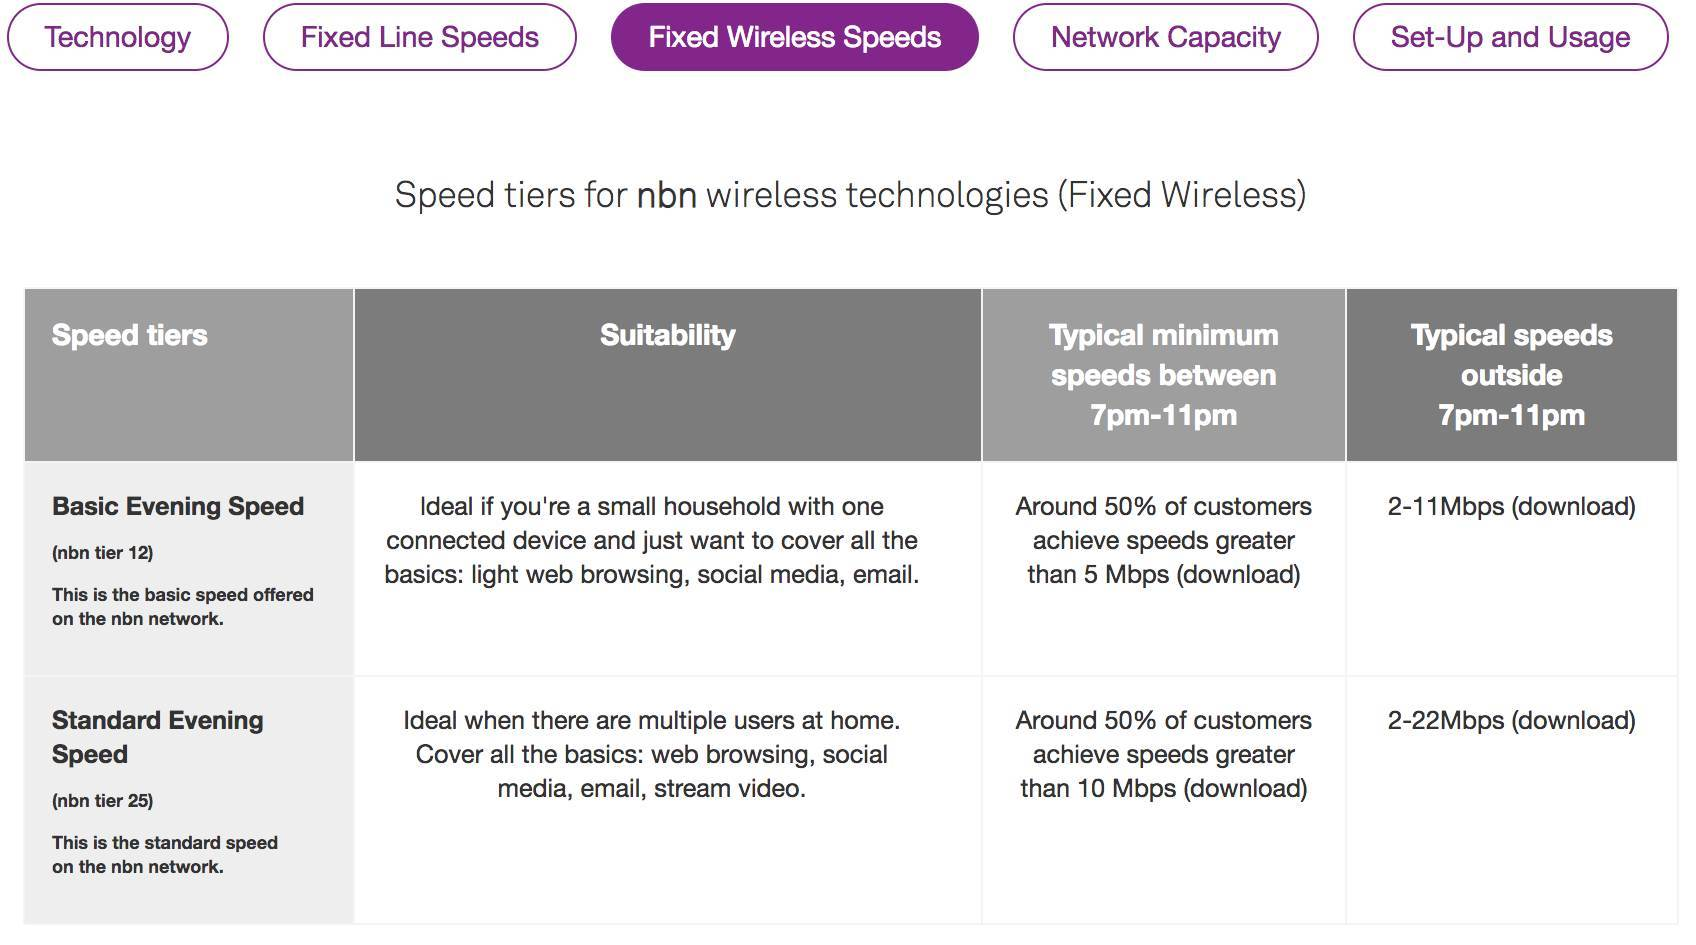 Telstra restates its NBN fixed wireless speeds - Telco/ISP